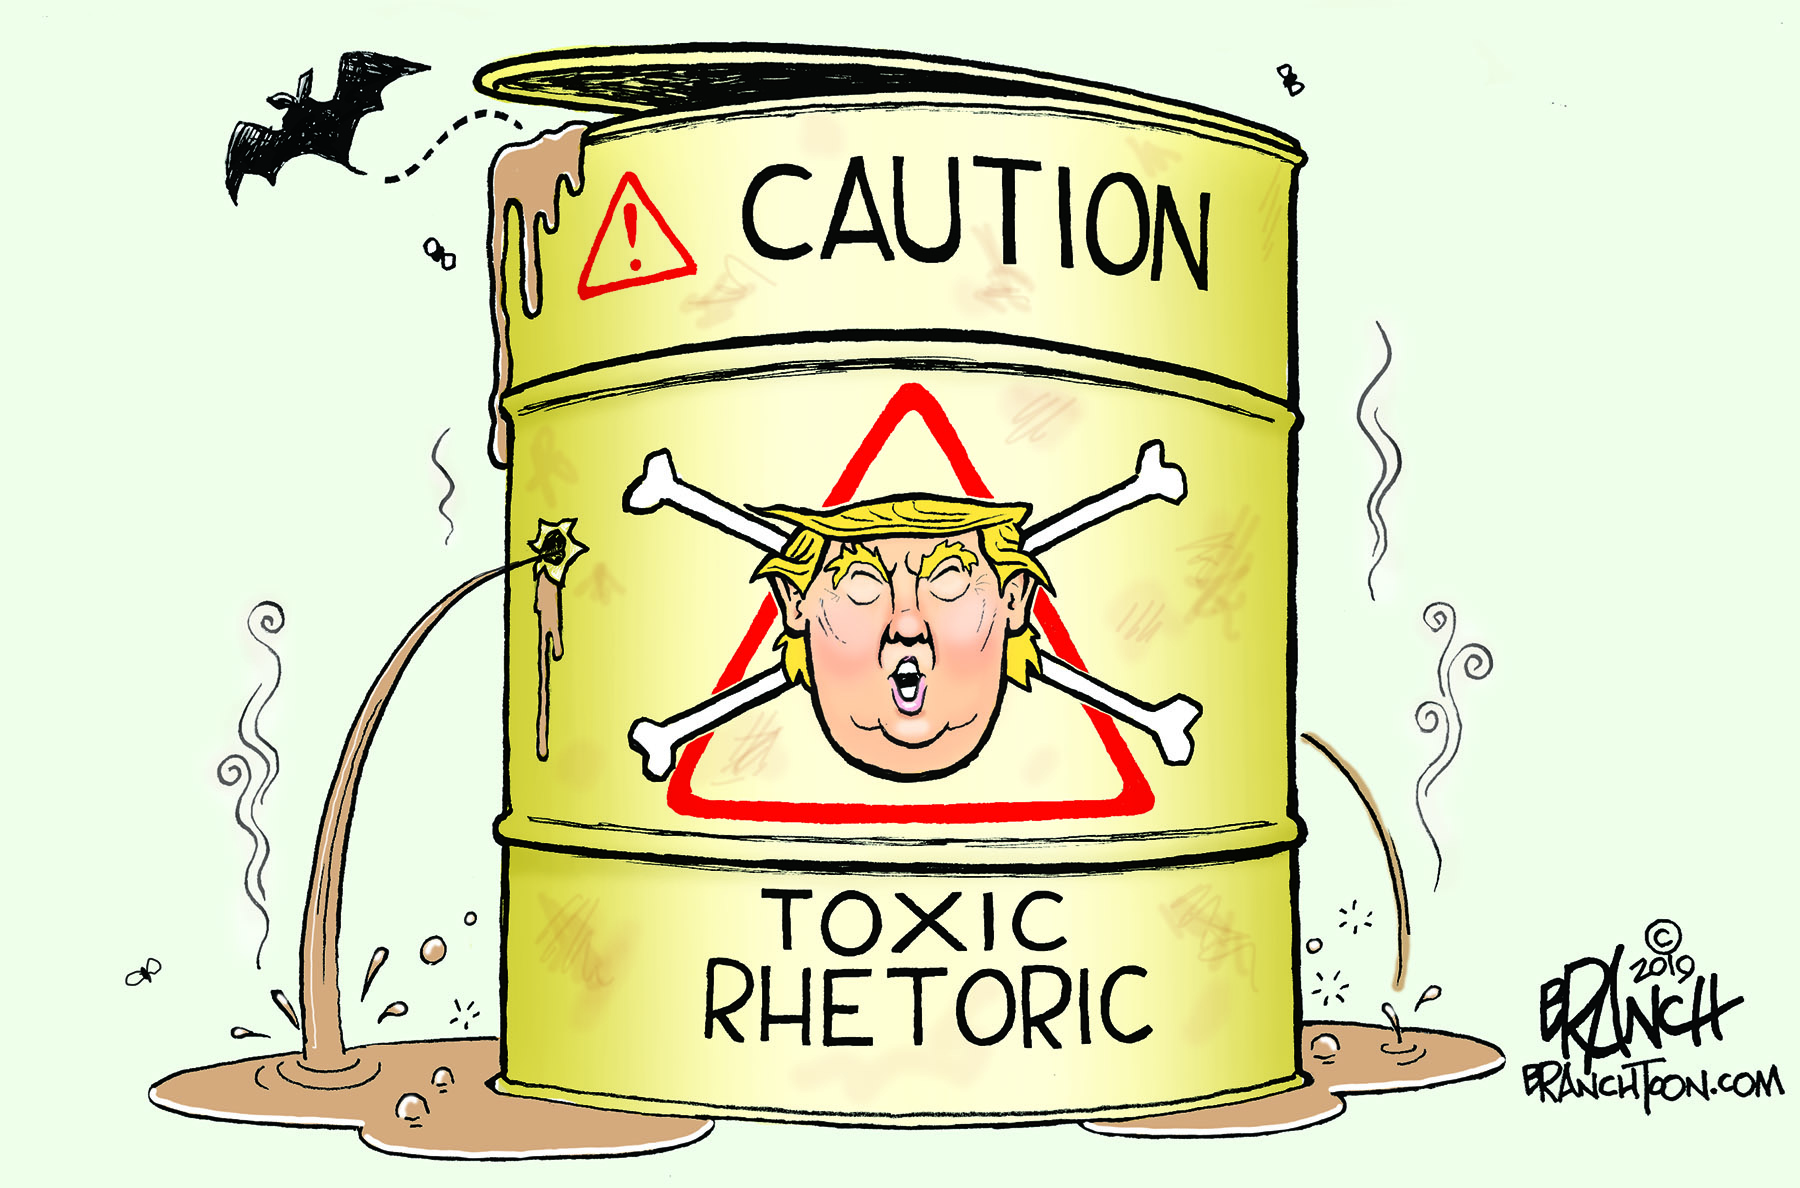 080519-trump-toxic-rhetoric-web